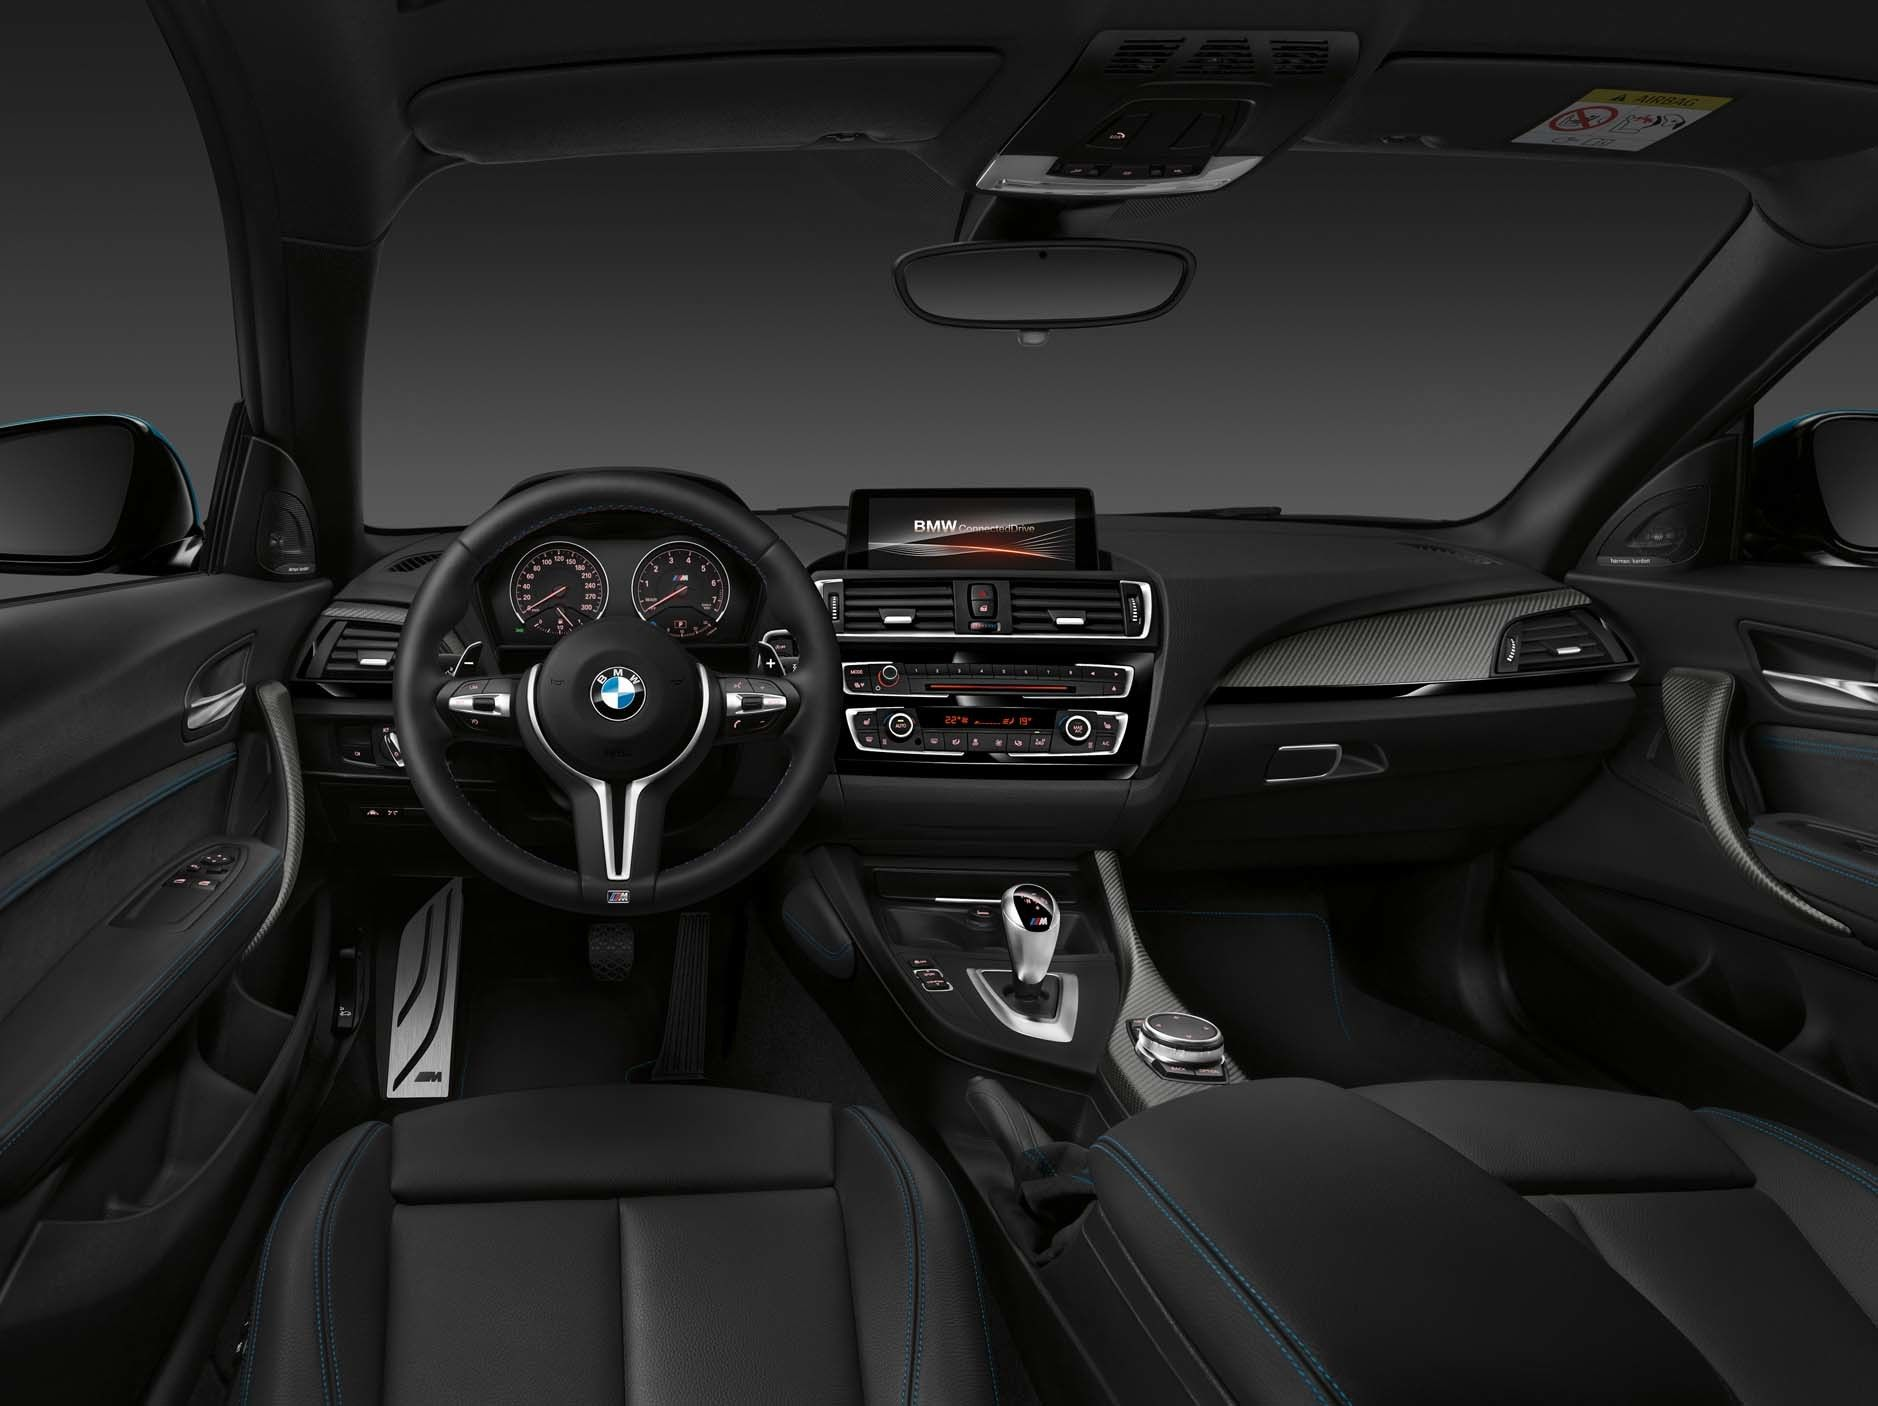 The 2016 Bmw M2 Is A Steroid Addled M235i Update Bmw M4 Bmw